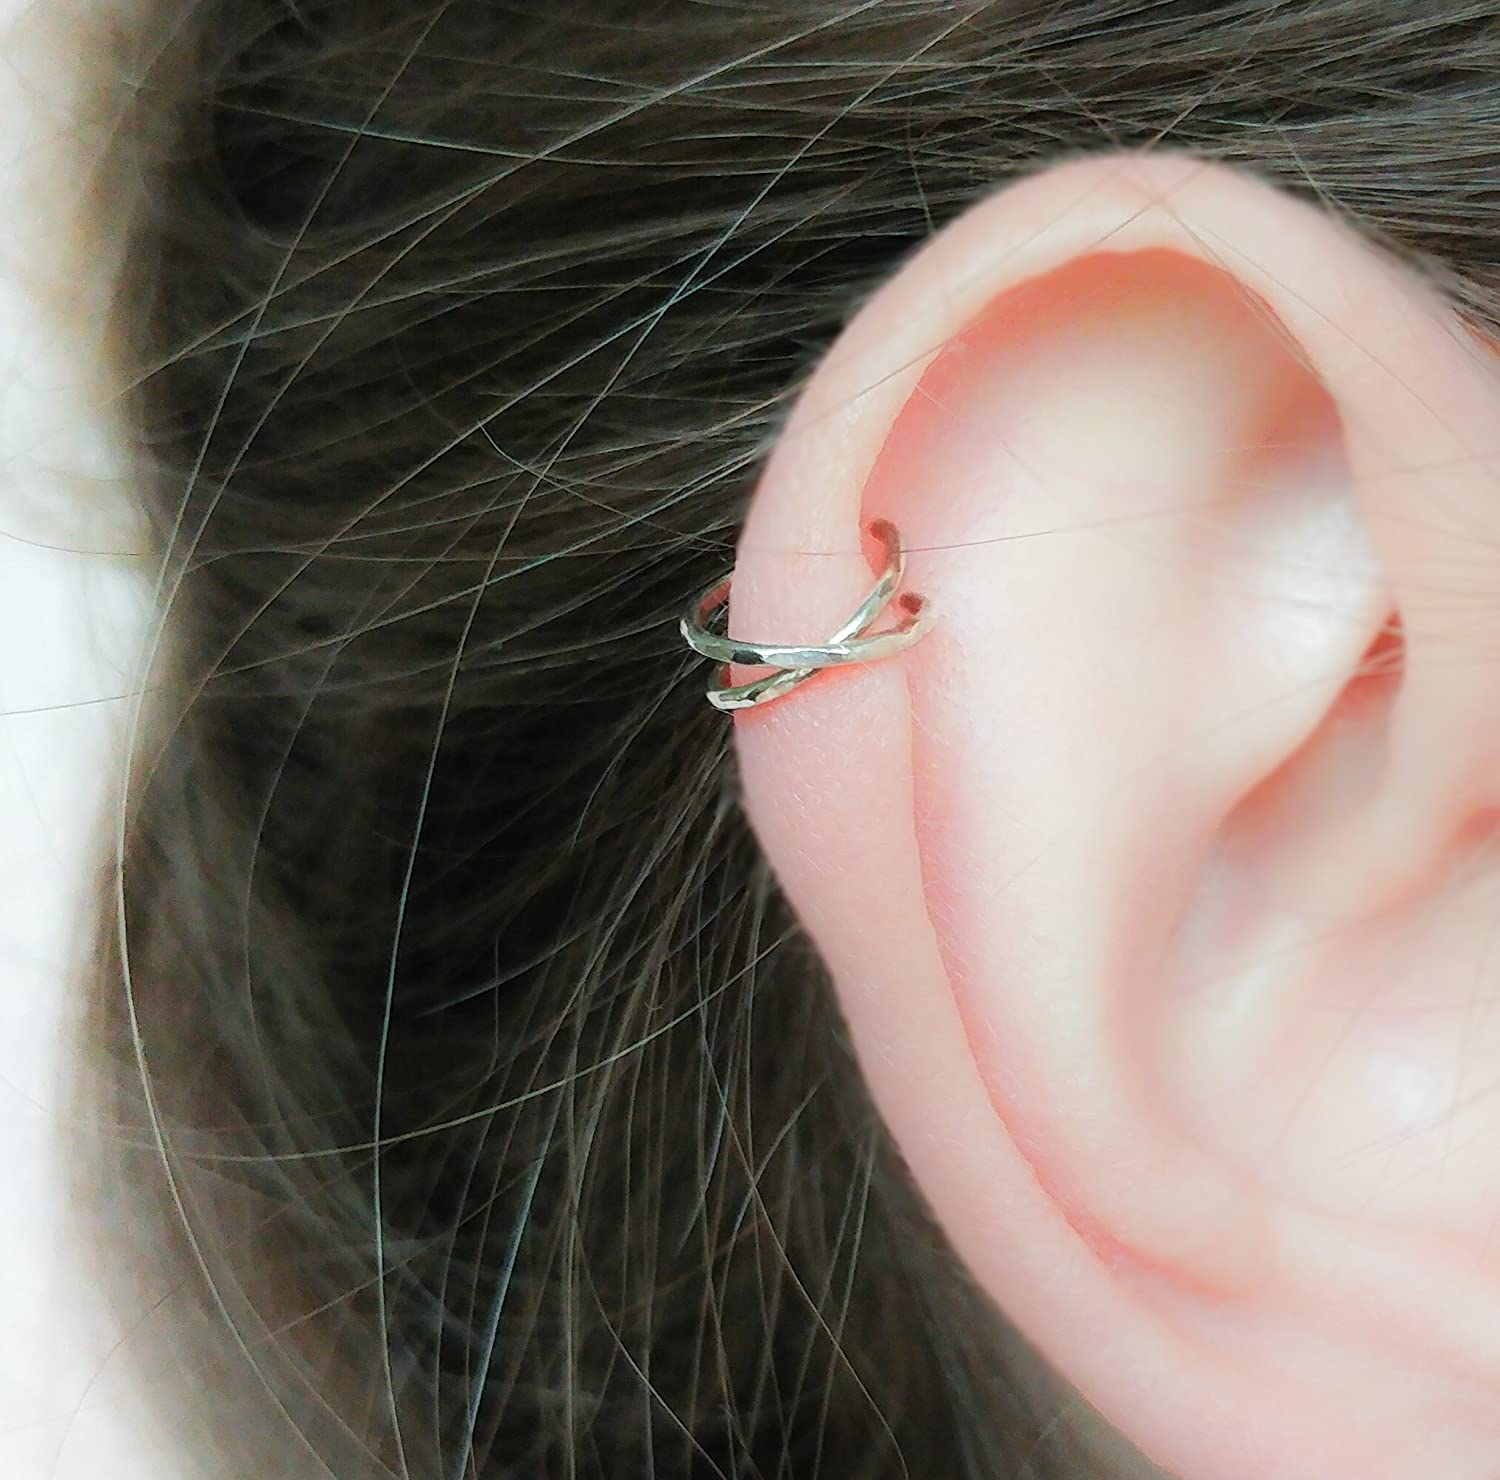 Ear Cuffs No Piercing Hammered Cross Ear cuff Fake helix earring Silver Gold Rose helix Ear wrap X ear cuff